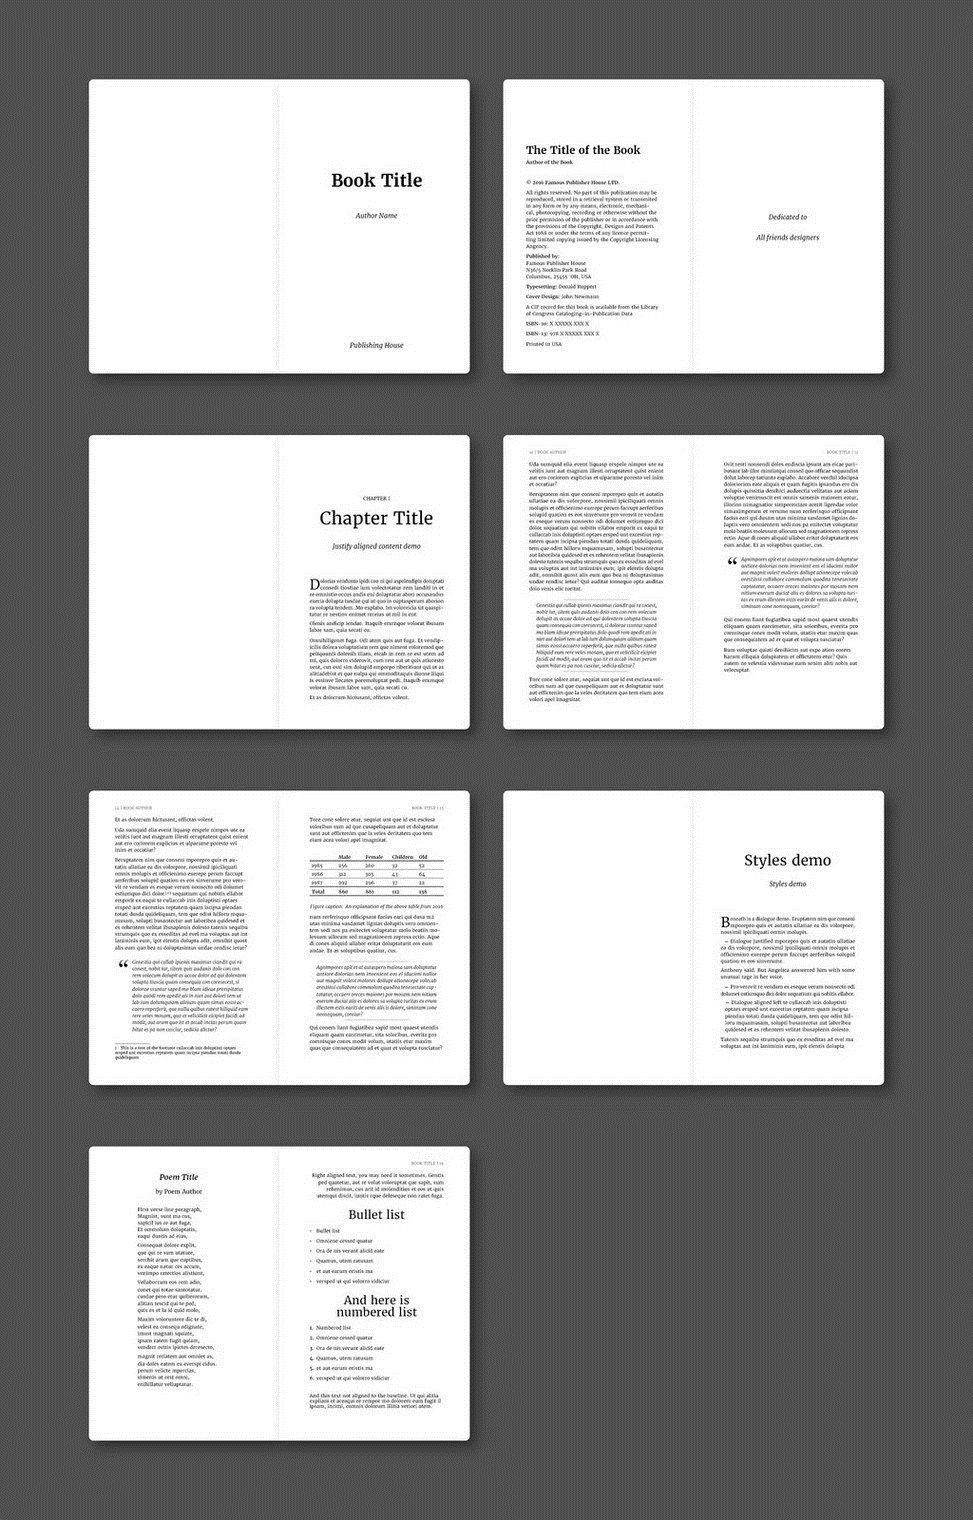 007 Shocking Indesign Book Layout Template High Resolution  Free DownloadFull